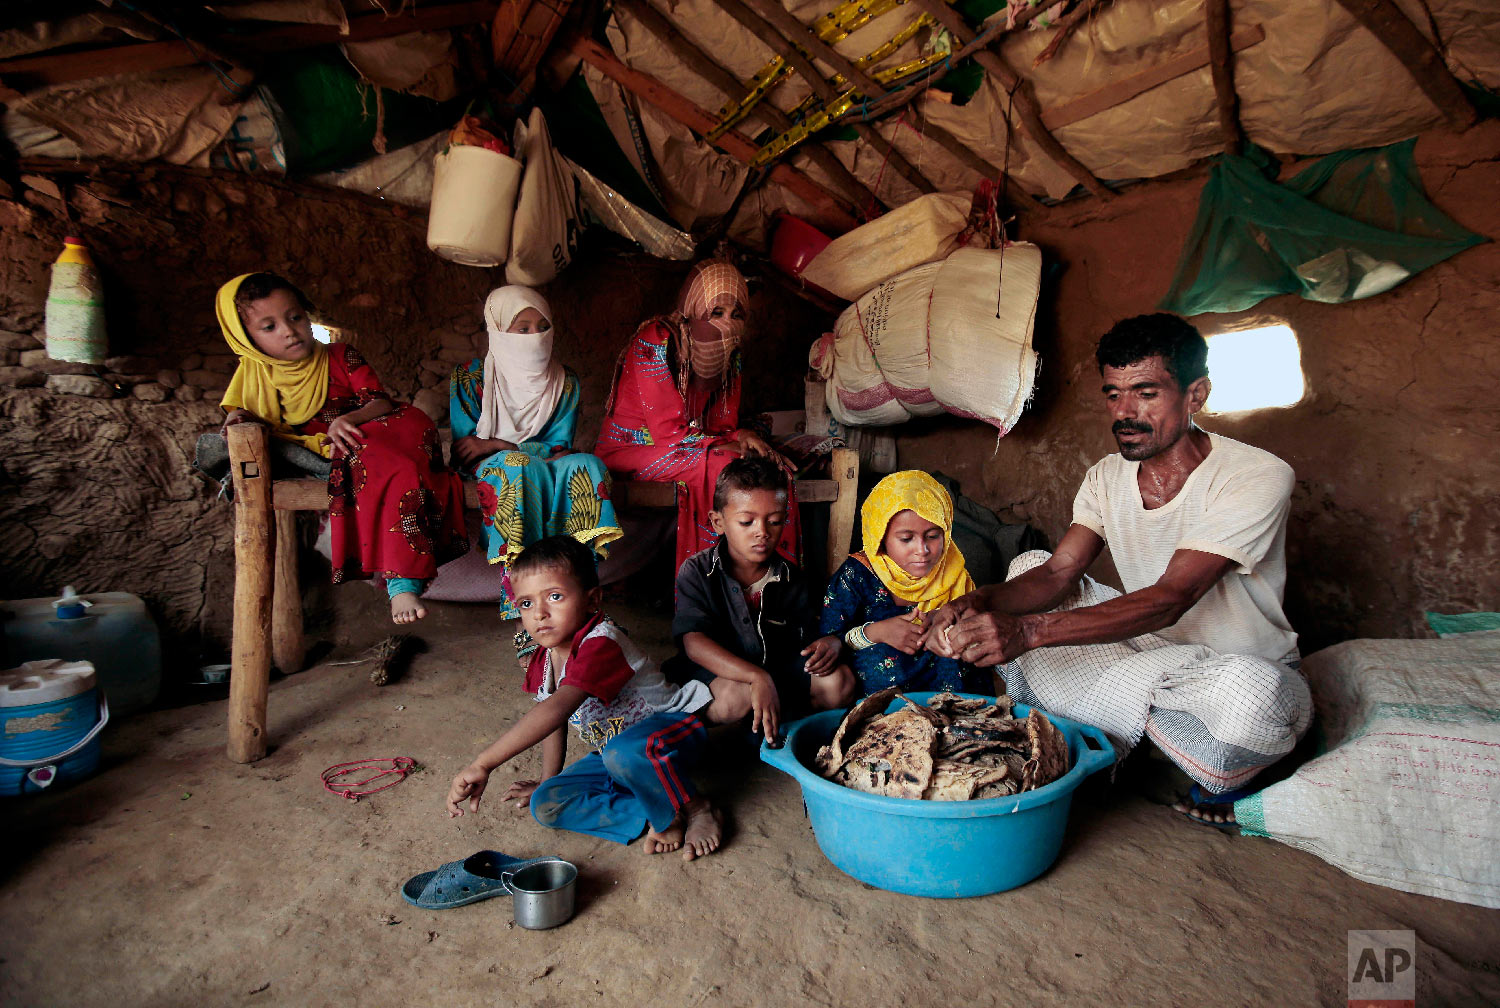 Yahia Hussein feeds his children moldy bread in their shelter, in Aslam, Hajjah, Yemen. (AP Photo/Hani Mohammed)